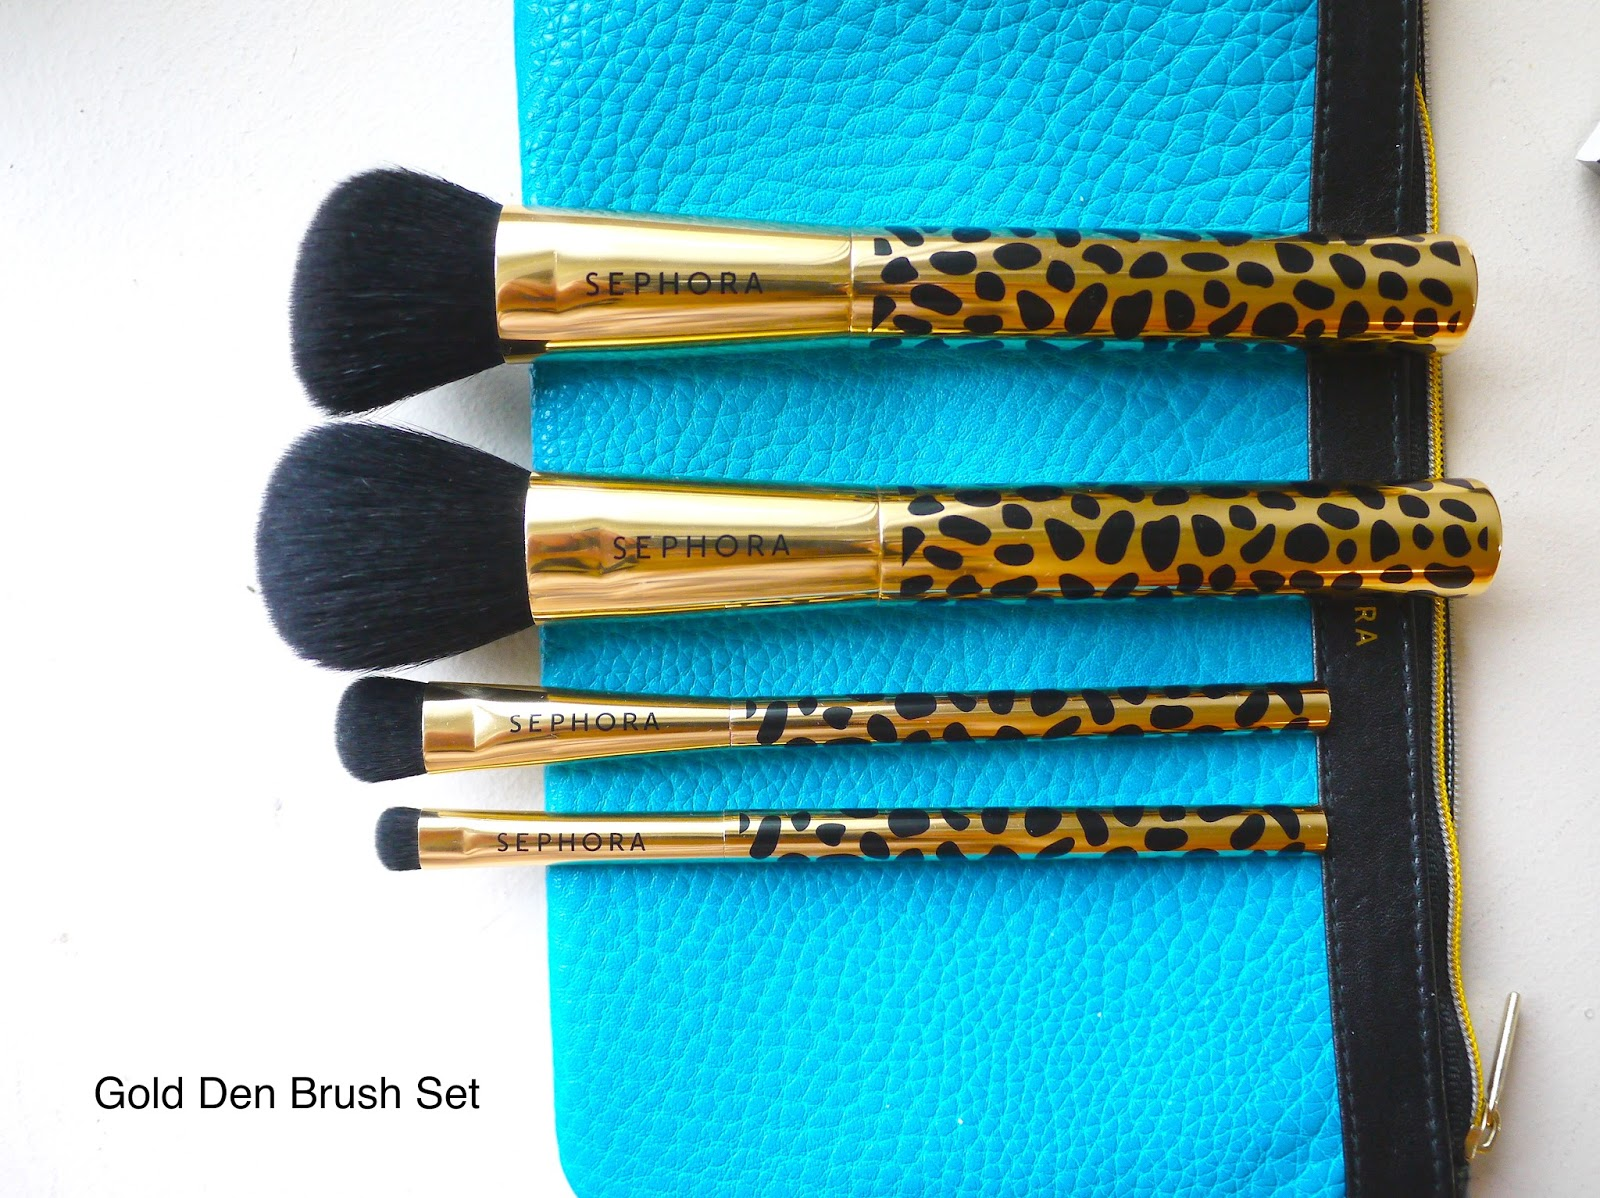 Sephora Gold Den Brush Set review